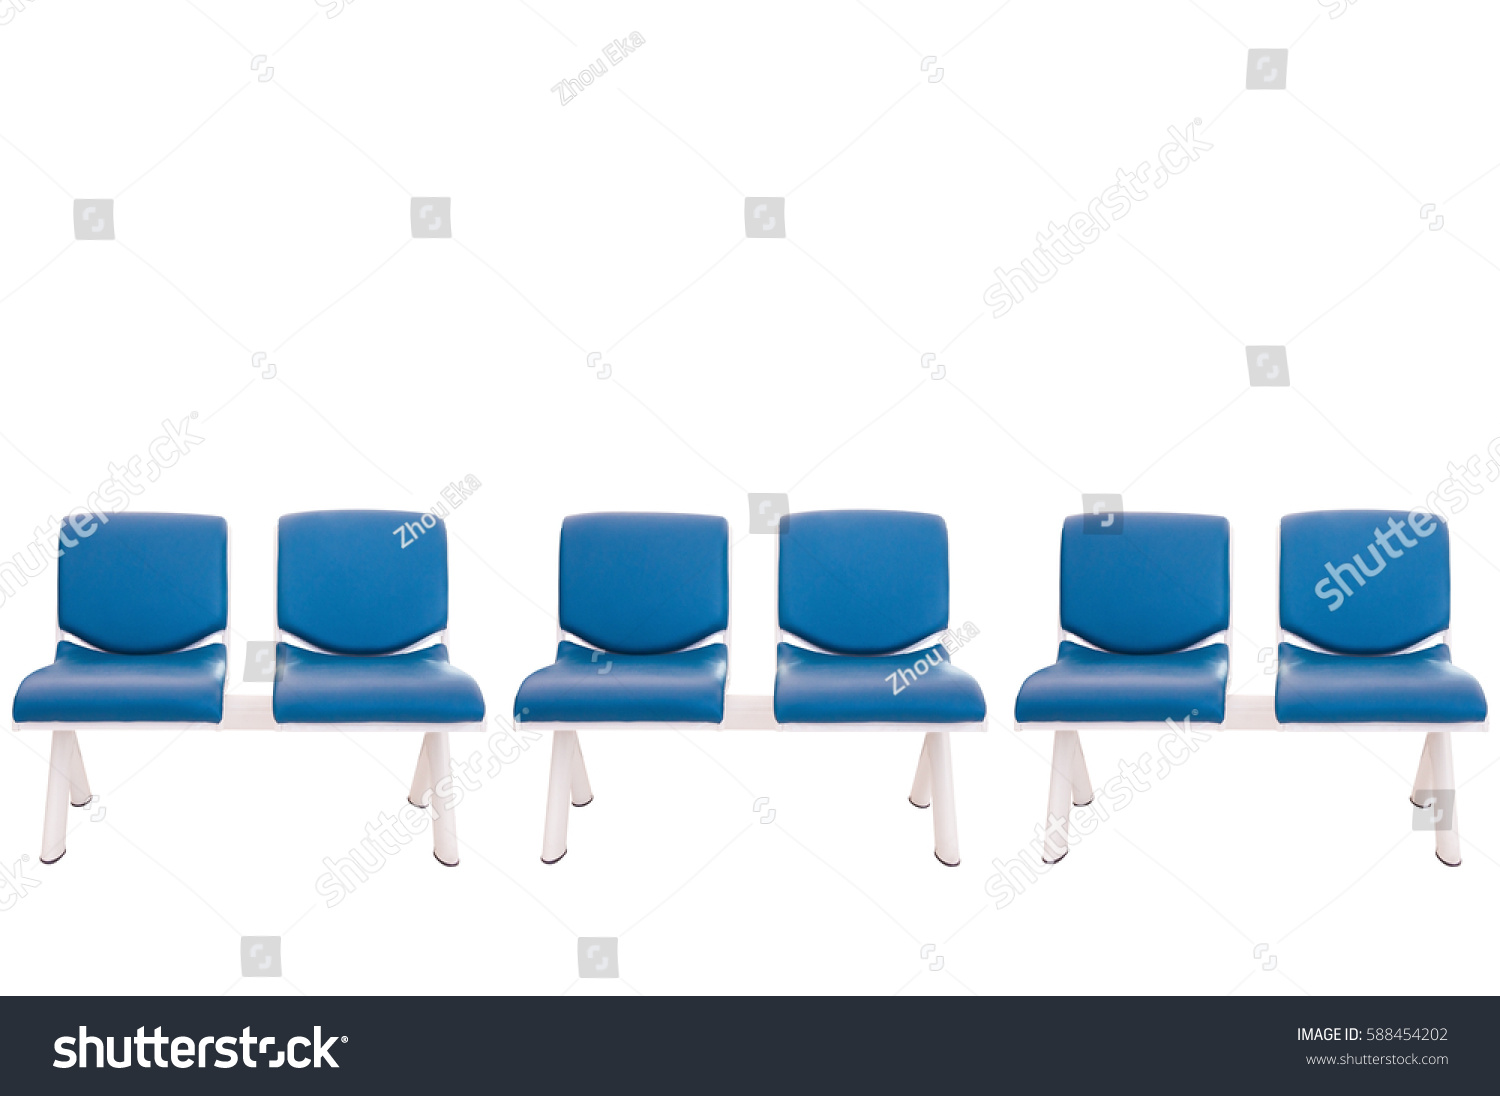 Leather Bench Chair Cover Blue Leather Stock Photo